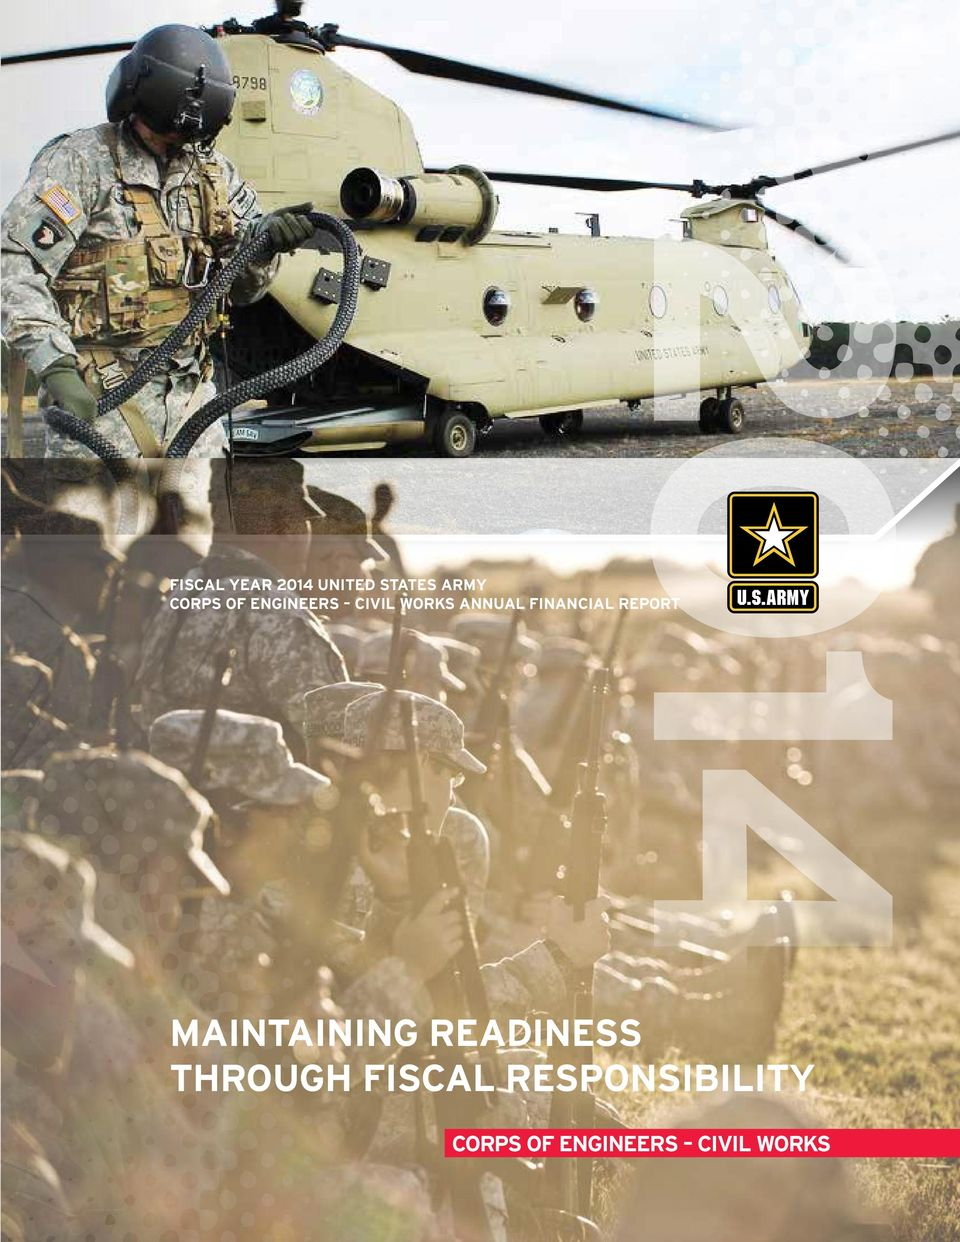 REPORT MAINTAINING READINESS THROUGH FISCAL